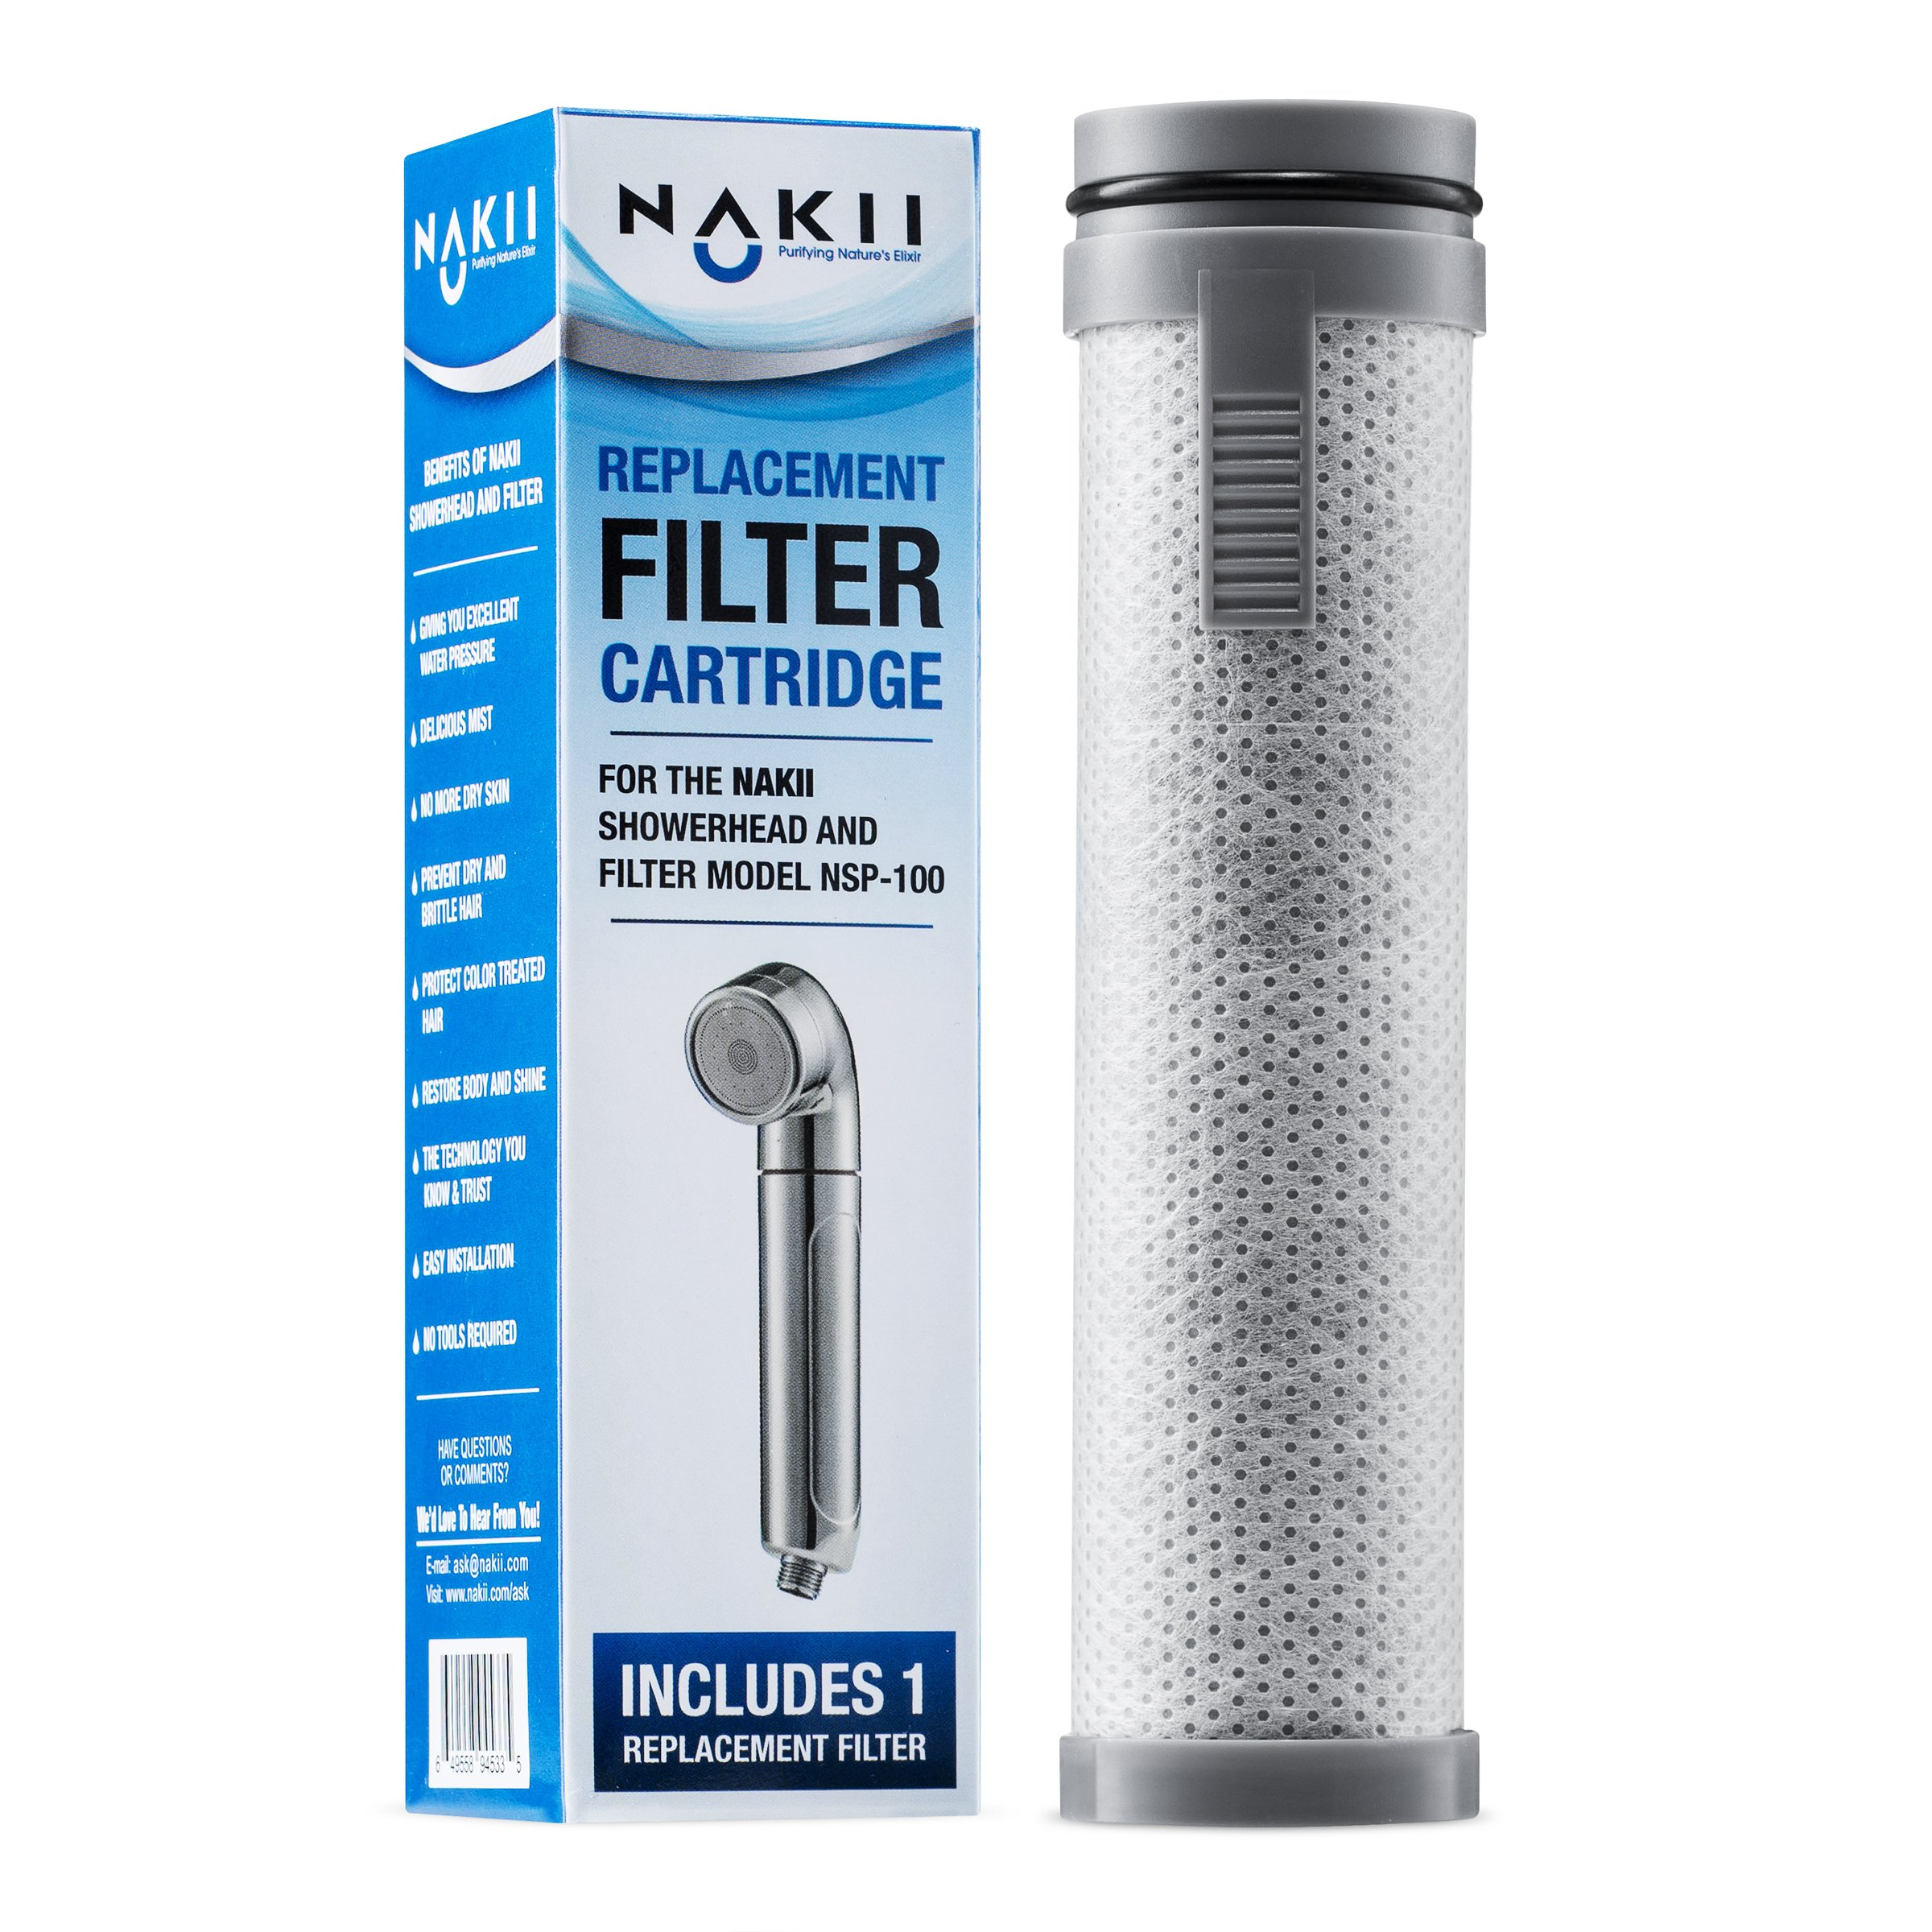 Nakii Replacement Filter For NSP-100, Single Pack